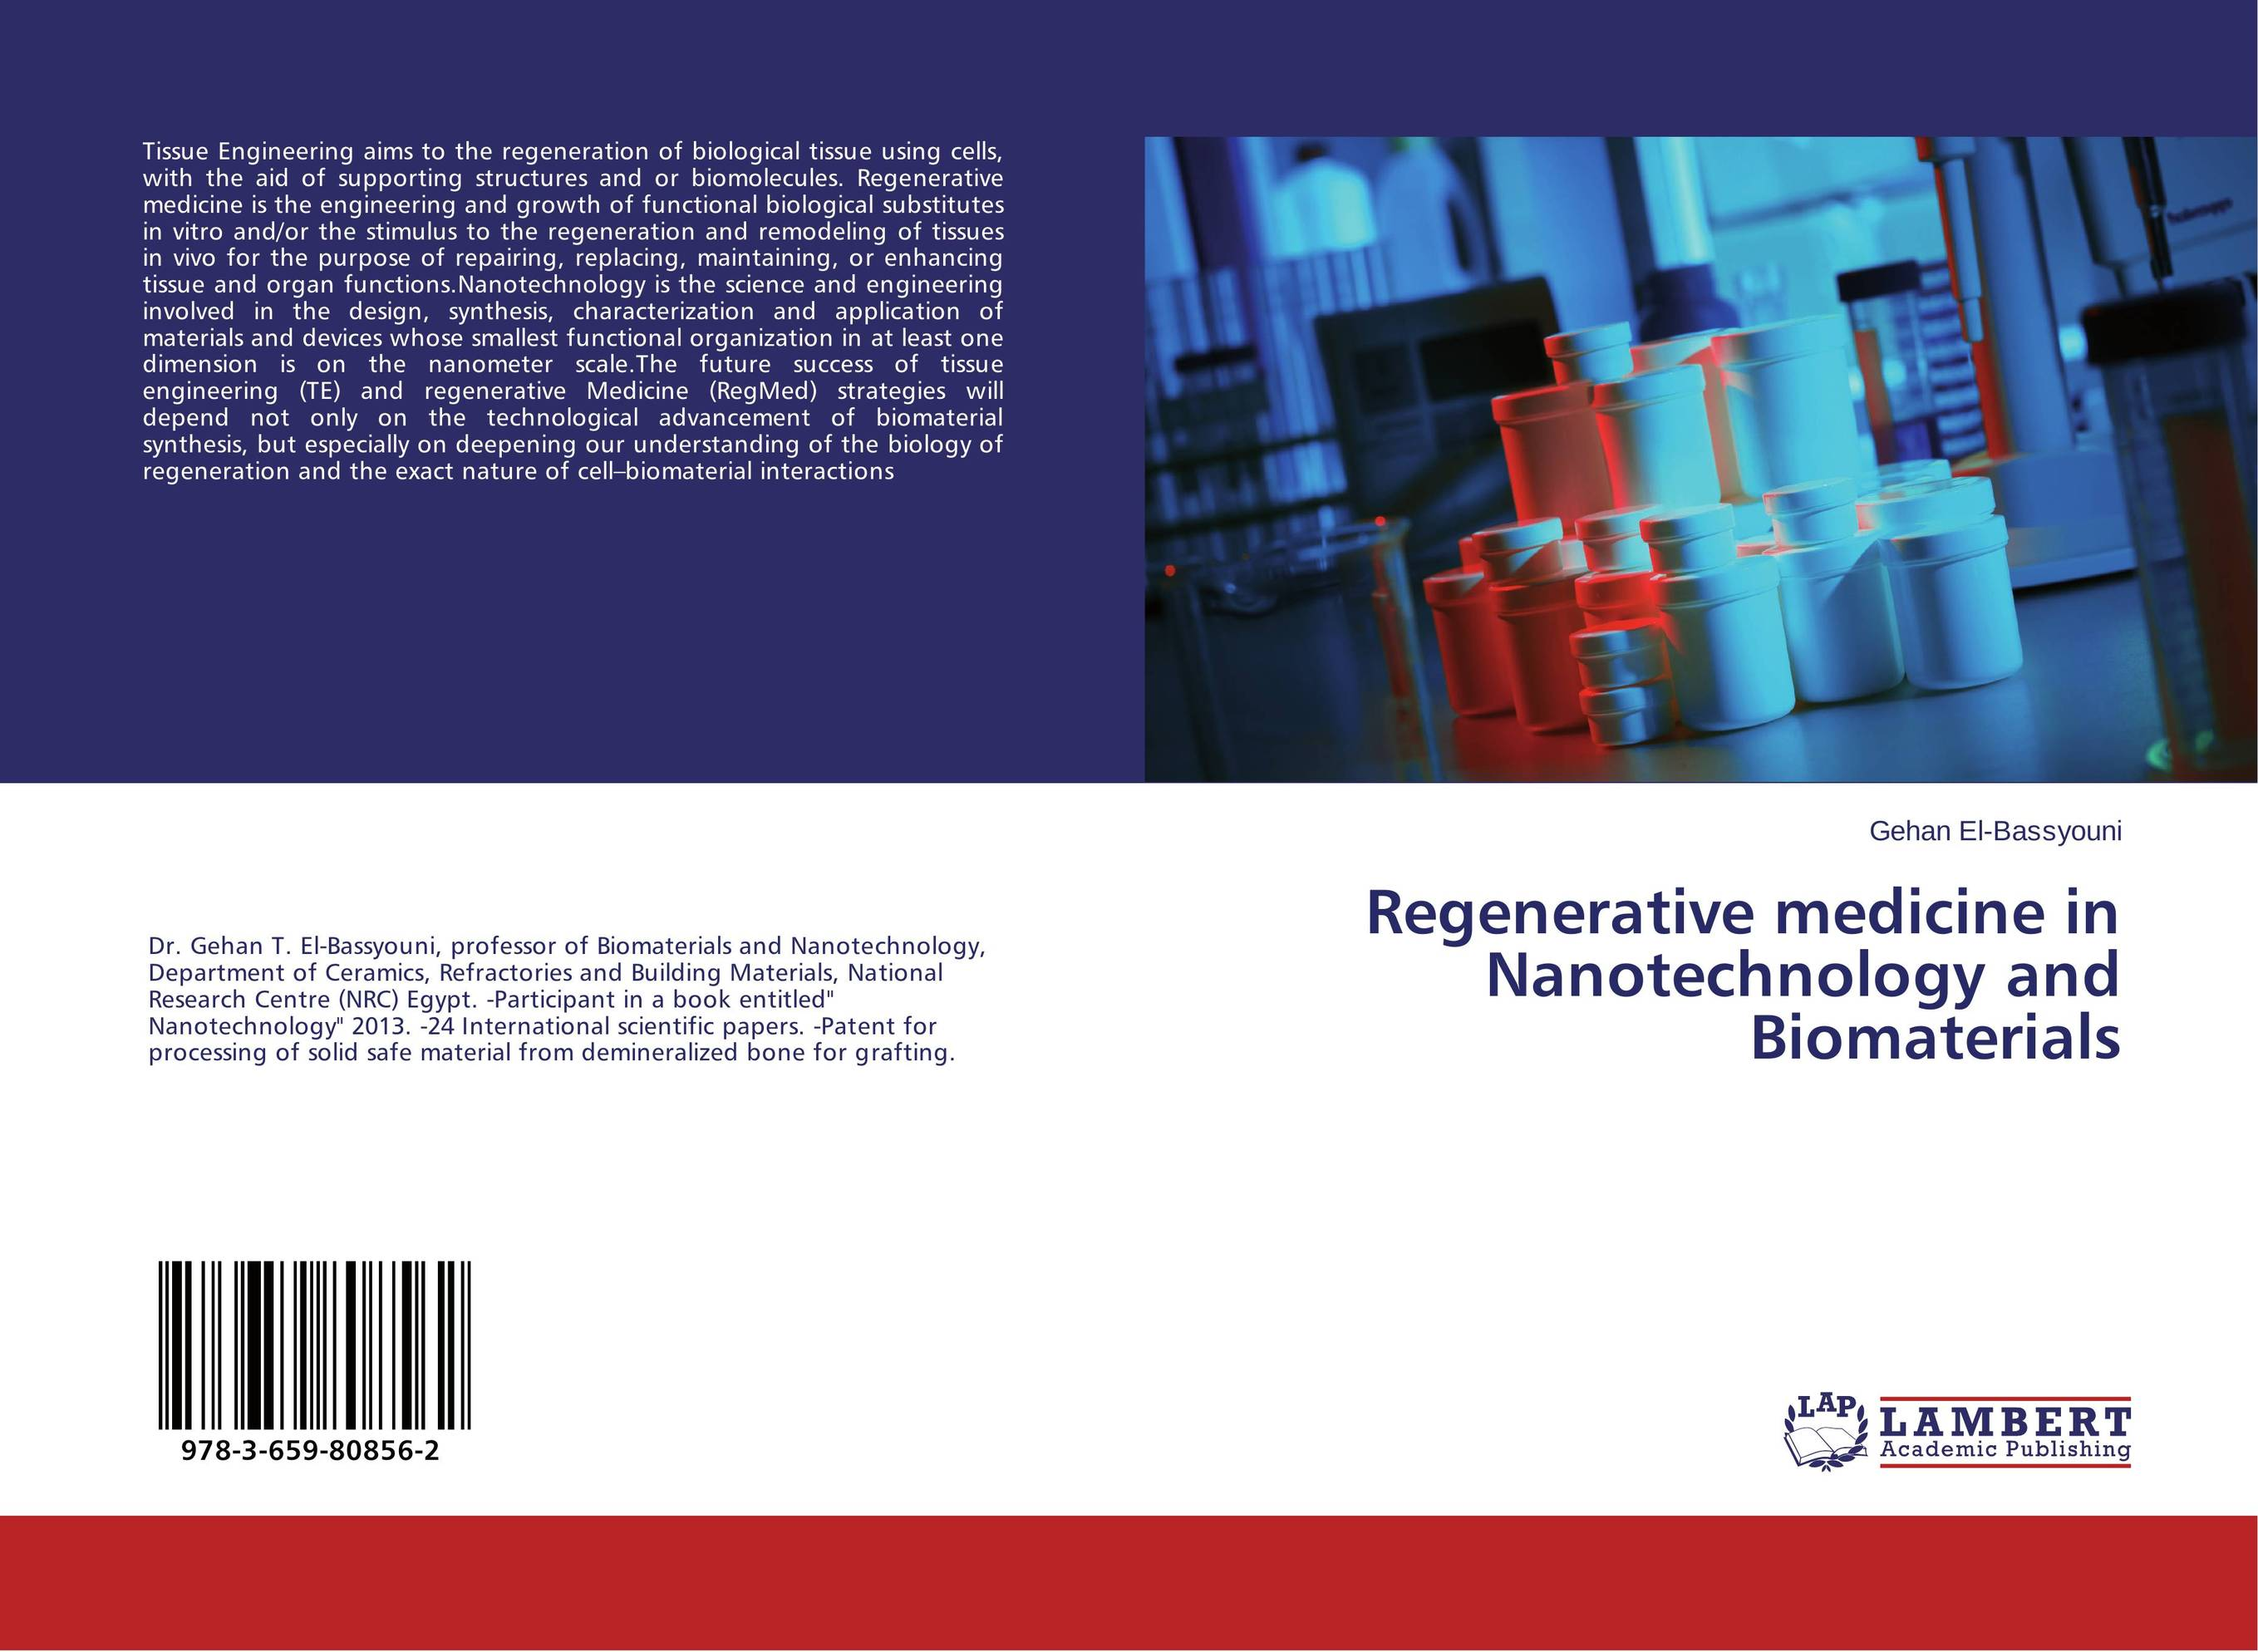 Regenerative medicine in Nanotechnology and Biomaterials dennis hall g boronic acids preparation and applications in organic synthesis medicine and materials